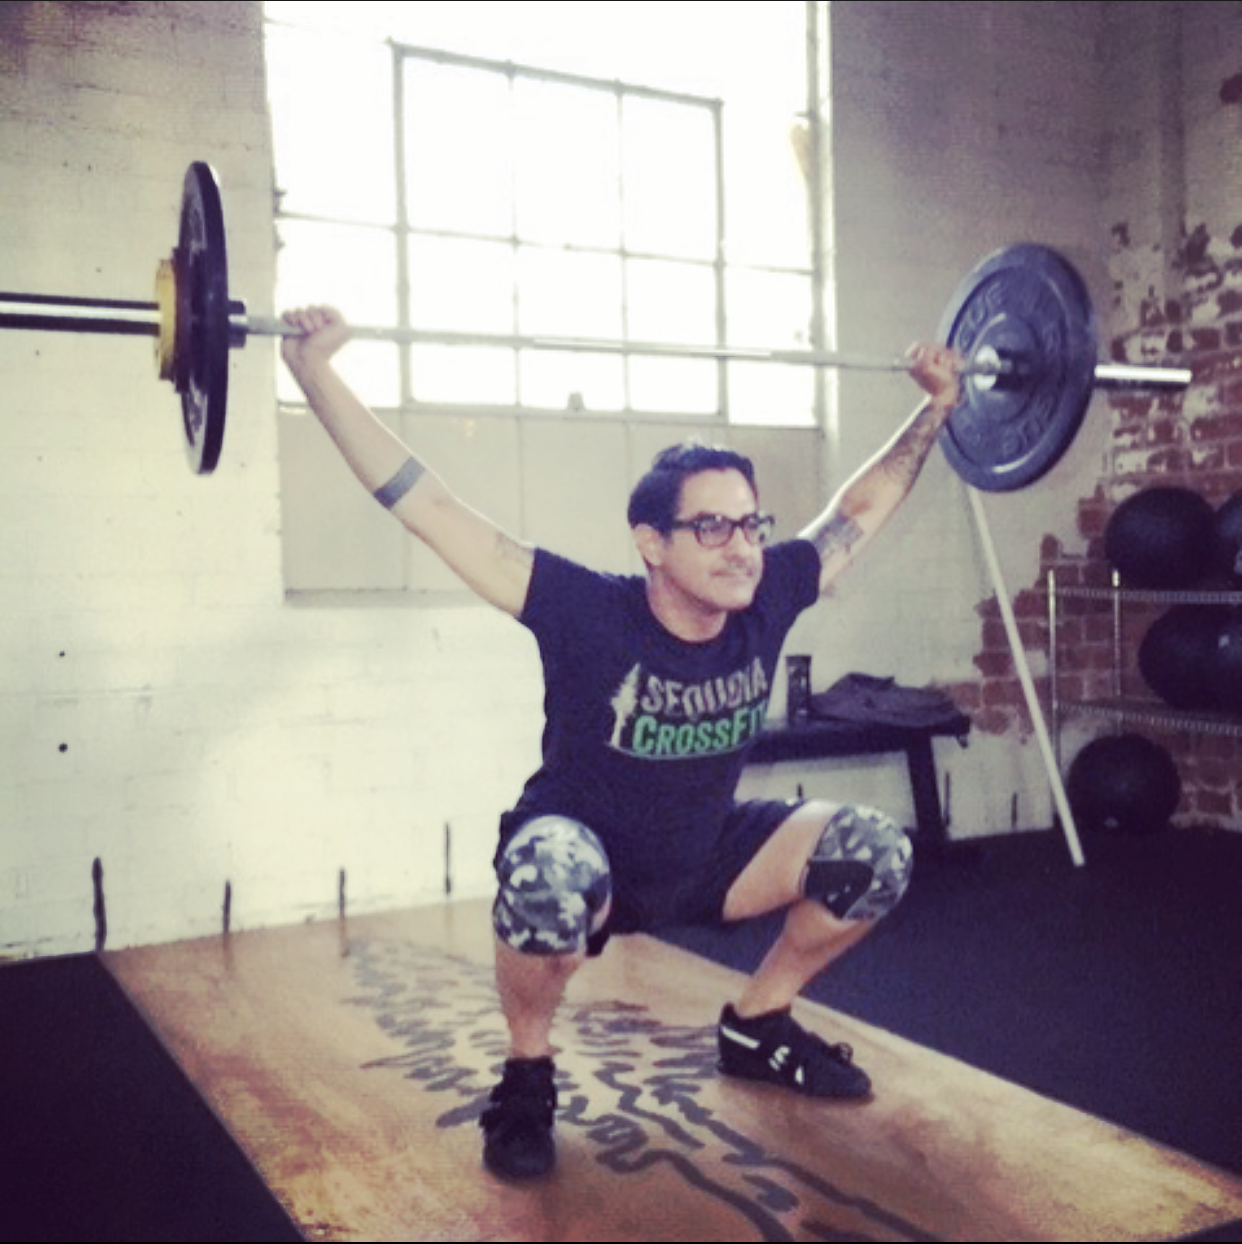 ADAN LUEVANO - How long have you been a member of Barbell Club?I will have one year in October as a member of Barbell Club.Had you done CrossFit before joining? If so, for how long?I had not tried either CrossFit or Weightlifting prior to starting with Sequoia CrossFit.What inspired you to join Barbell Club?I had been watching videos of weightlifting and it seemed really fun and hard at the same time. I am really drawn to the discipline of the movements.What is your favorite WOD and why?The workouts are pretty varied but all are centered with elements of the snatch and clean and jerk.What is your favorite movement and why?Now, it is the snatch. I used to get frustrated with it because my body did not want to bend into position but after a year I now feel comfortable with it and can appreciate it more.What is your favorite indulgence (type of food, drink, or....you know)?Pizza. Food in perfection.